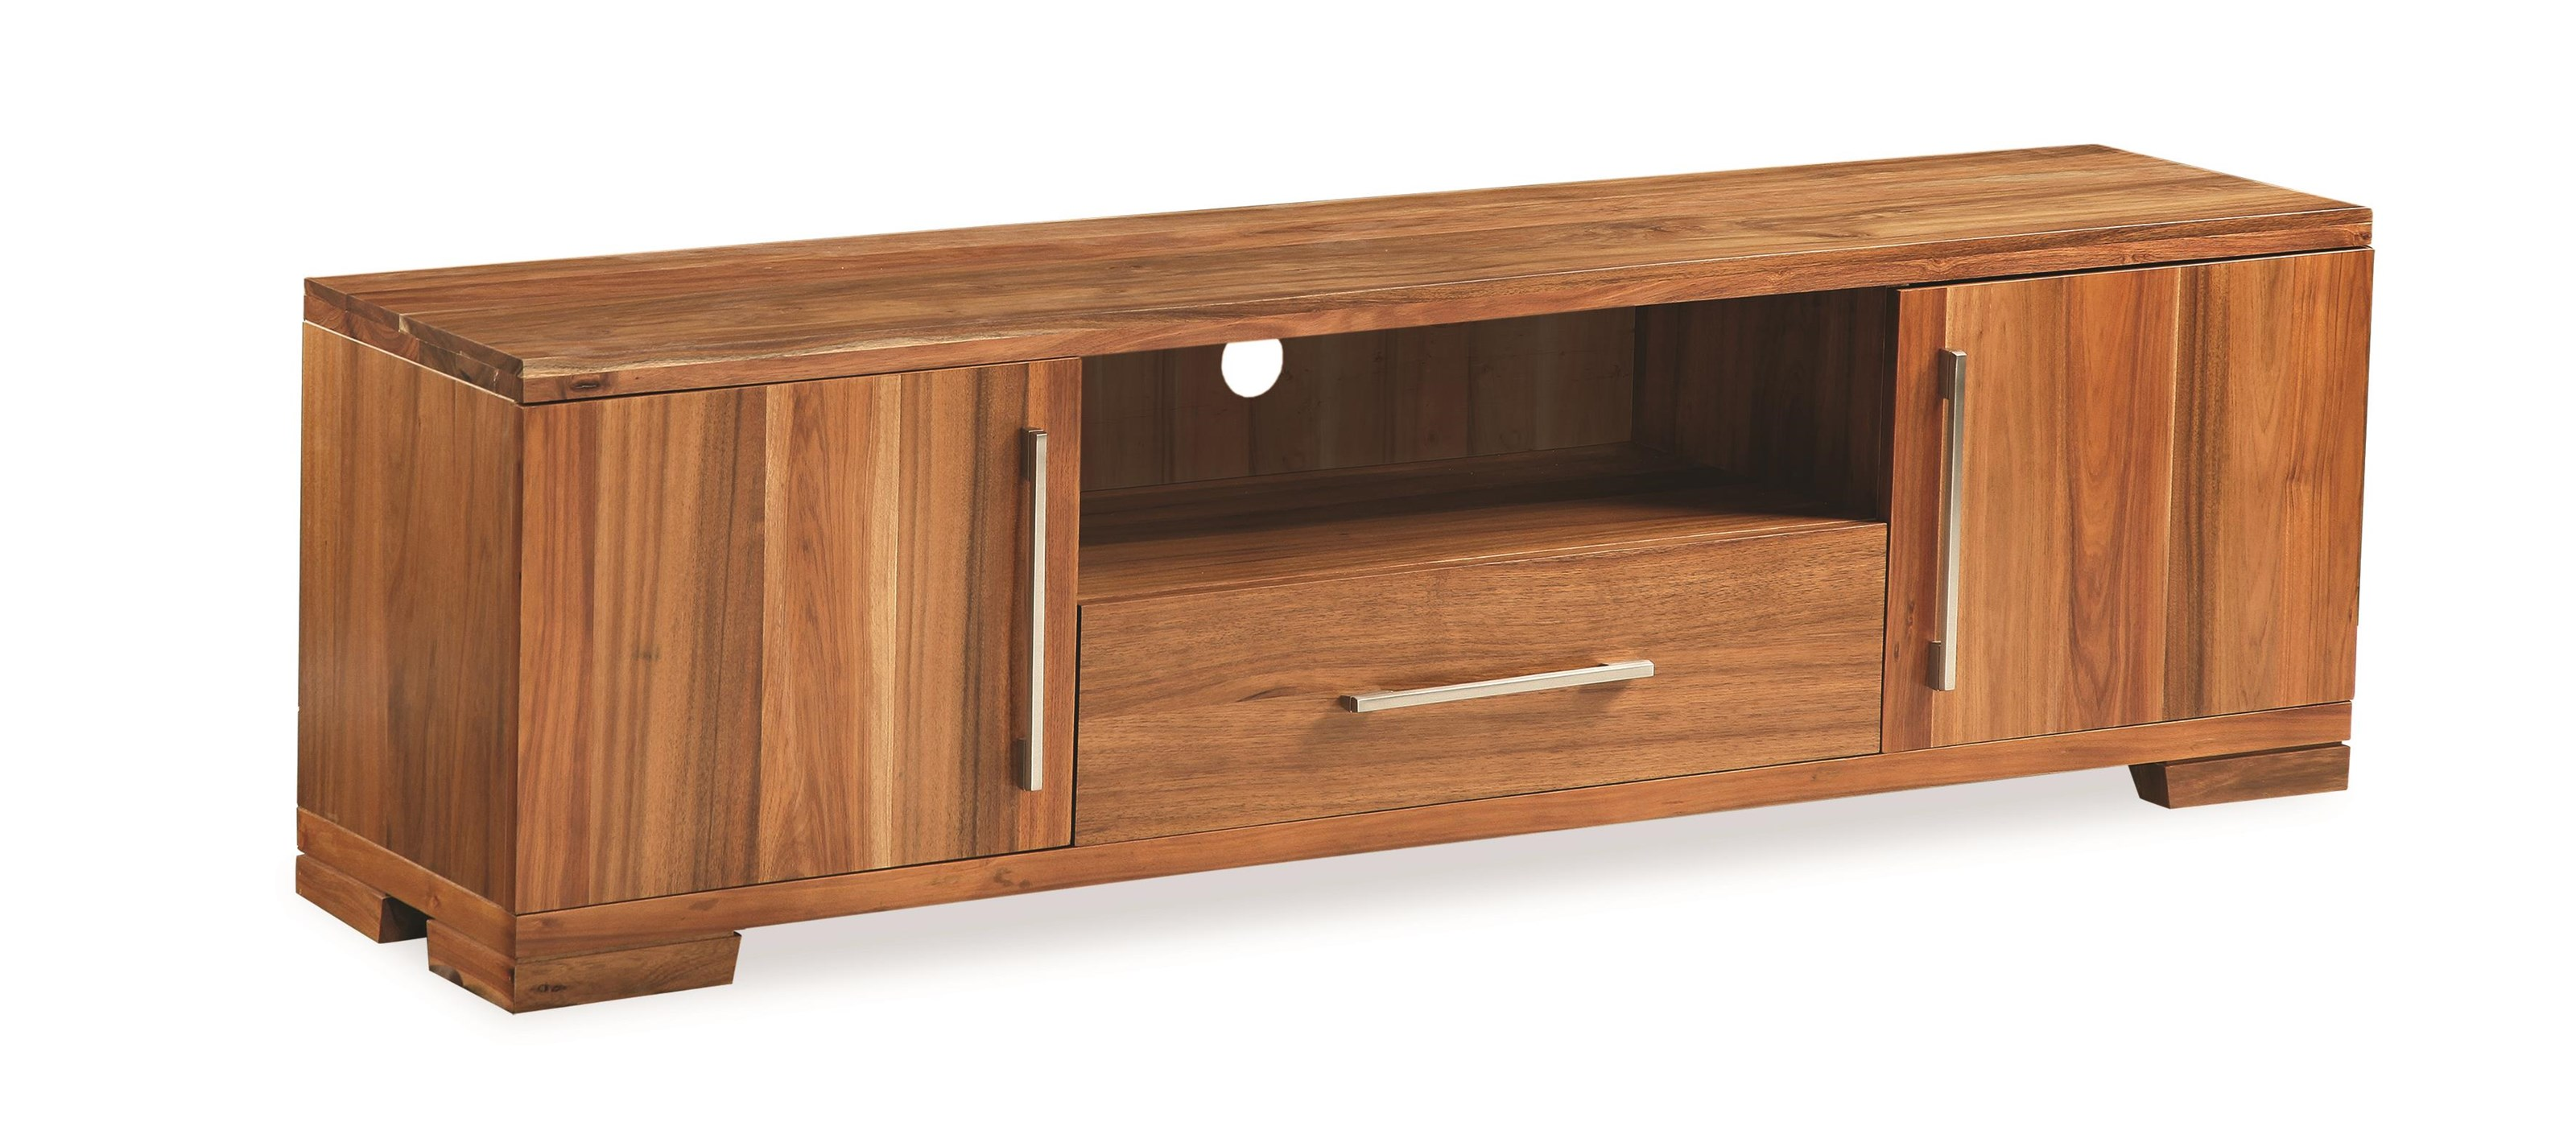 Global Home Clifton Media Console - Item Number: G2080